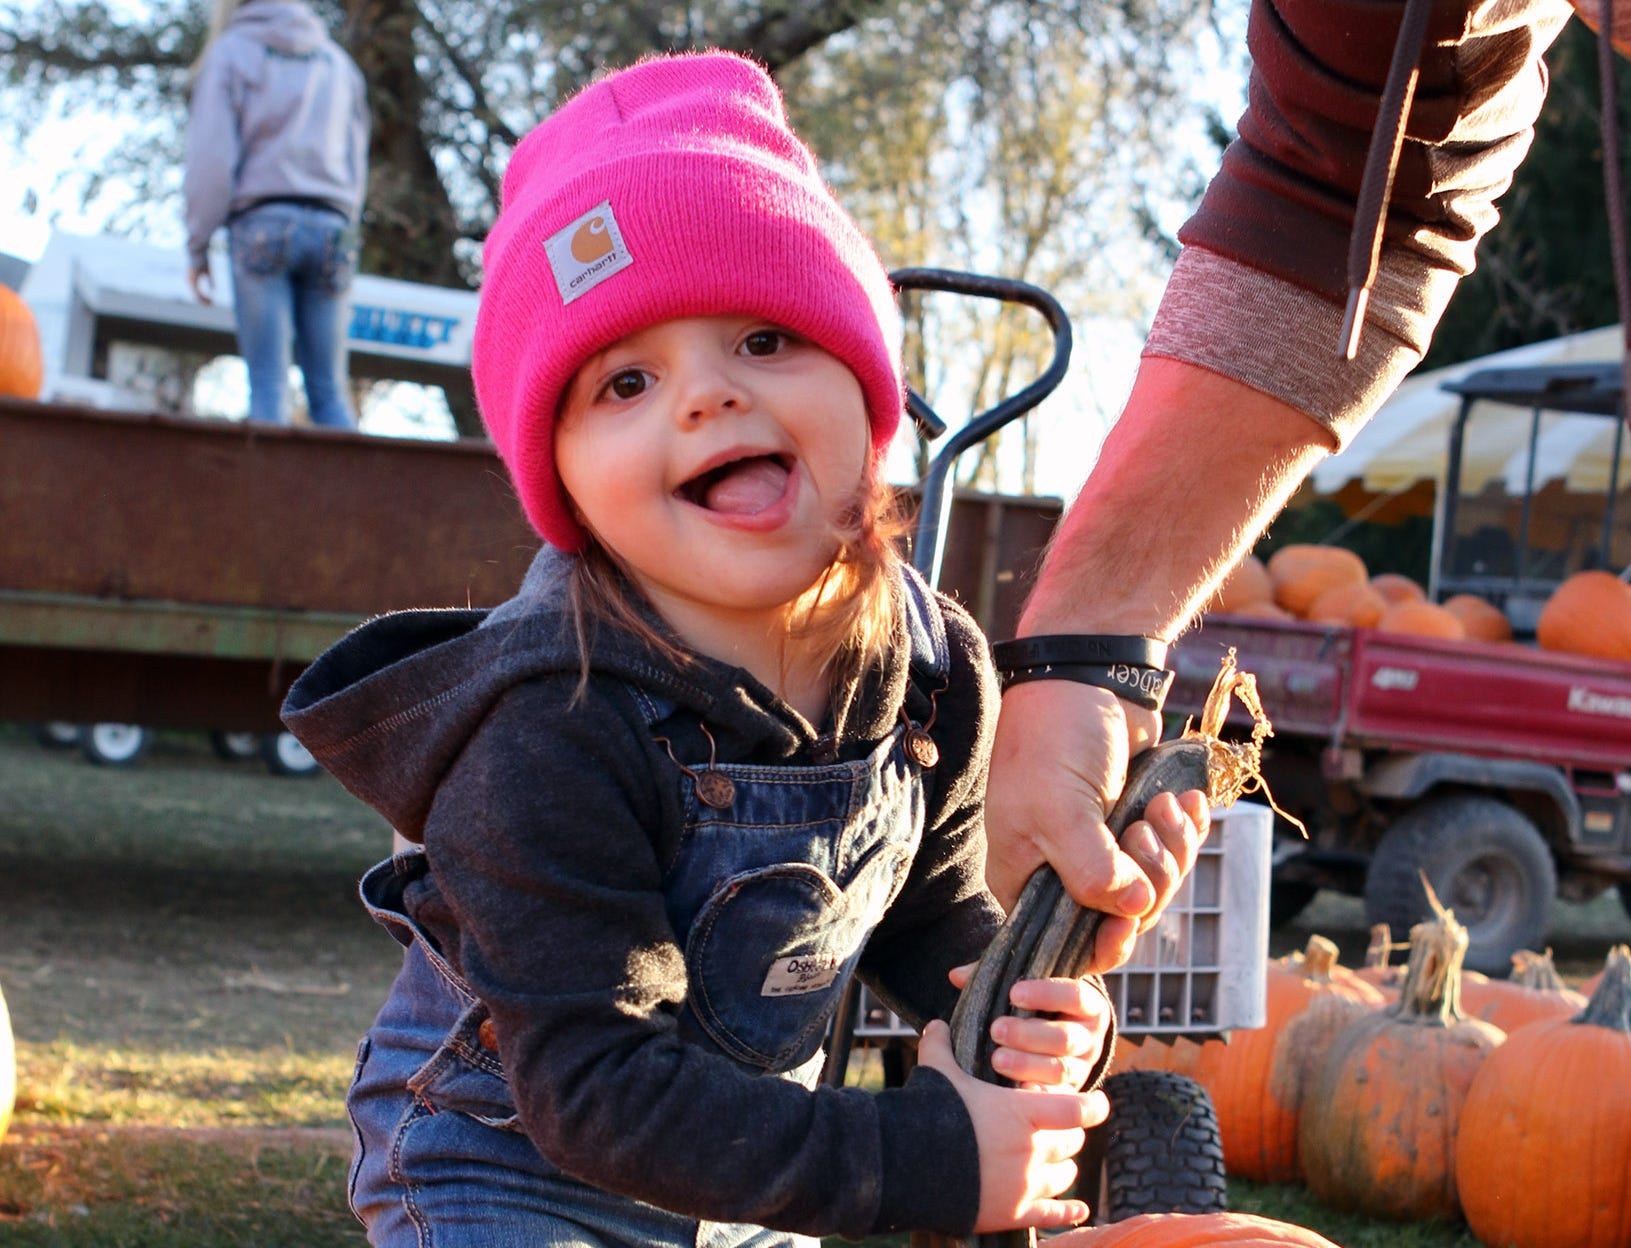 Ellie Bauer, 3, of Mukwonago, gets help lifing a pumpkin from dad, Greg, at Schuett Farms in Mukwonago on Oct. 22.